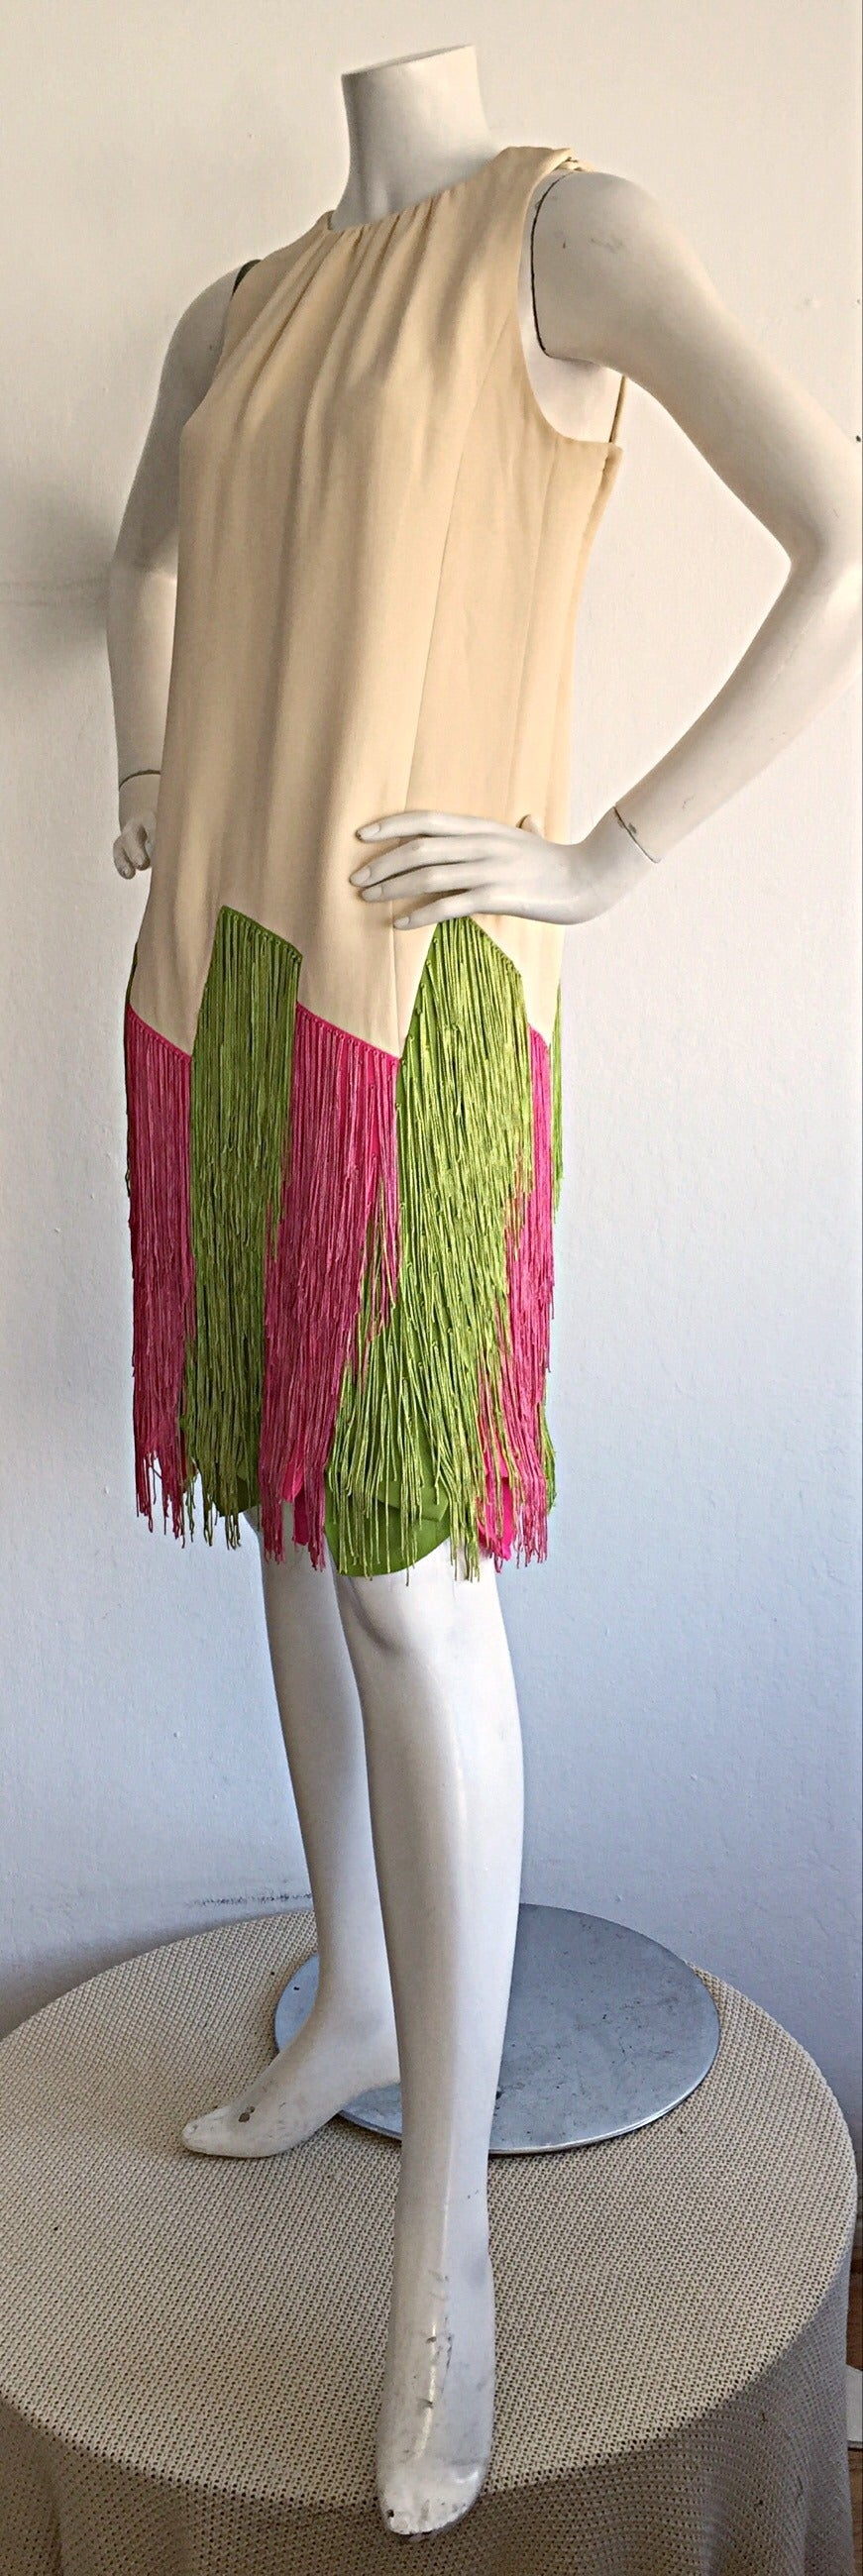 Ultra Rare Jean Louis 1960s 60s Fringe Car Wash Dress In Excellent Condition For Sale In San Francisco, CA